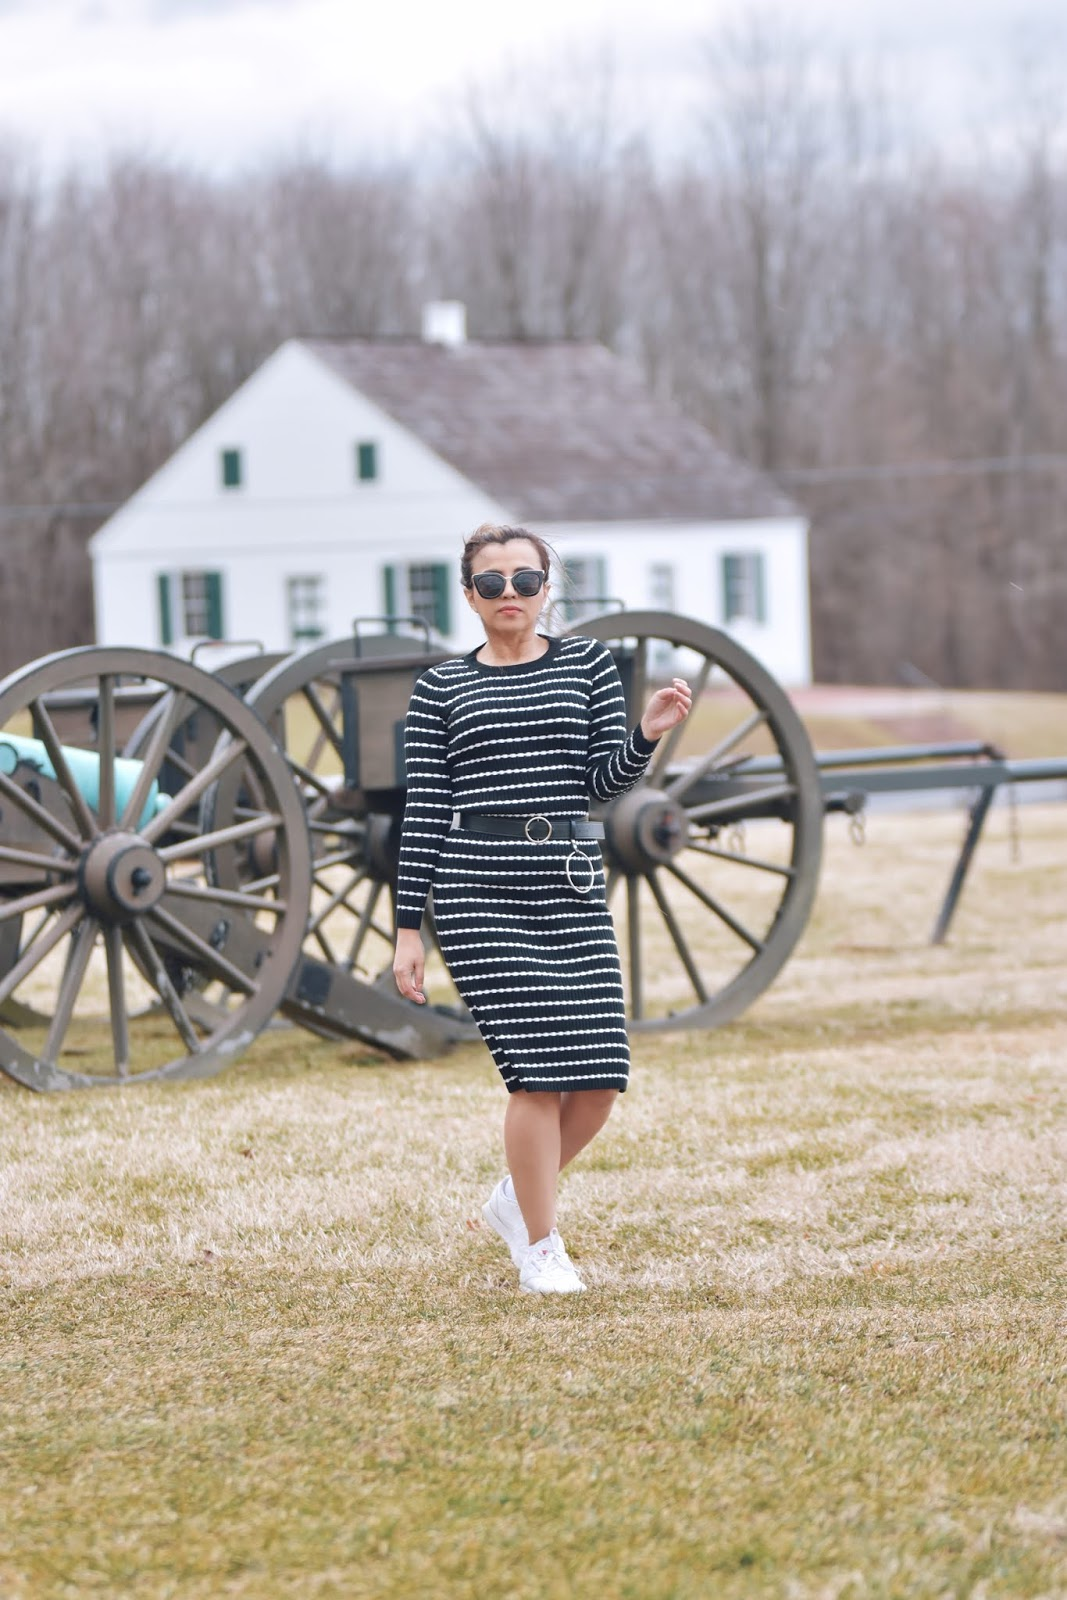 Antietam National Battlefield Maryland by Mari Estilo-lookbookstore-travelblogger-mariestilotravels-travelblogger-traveller-